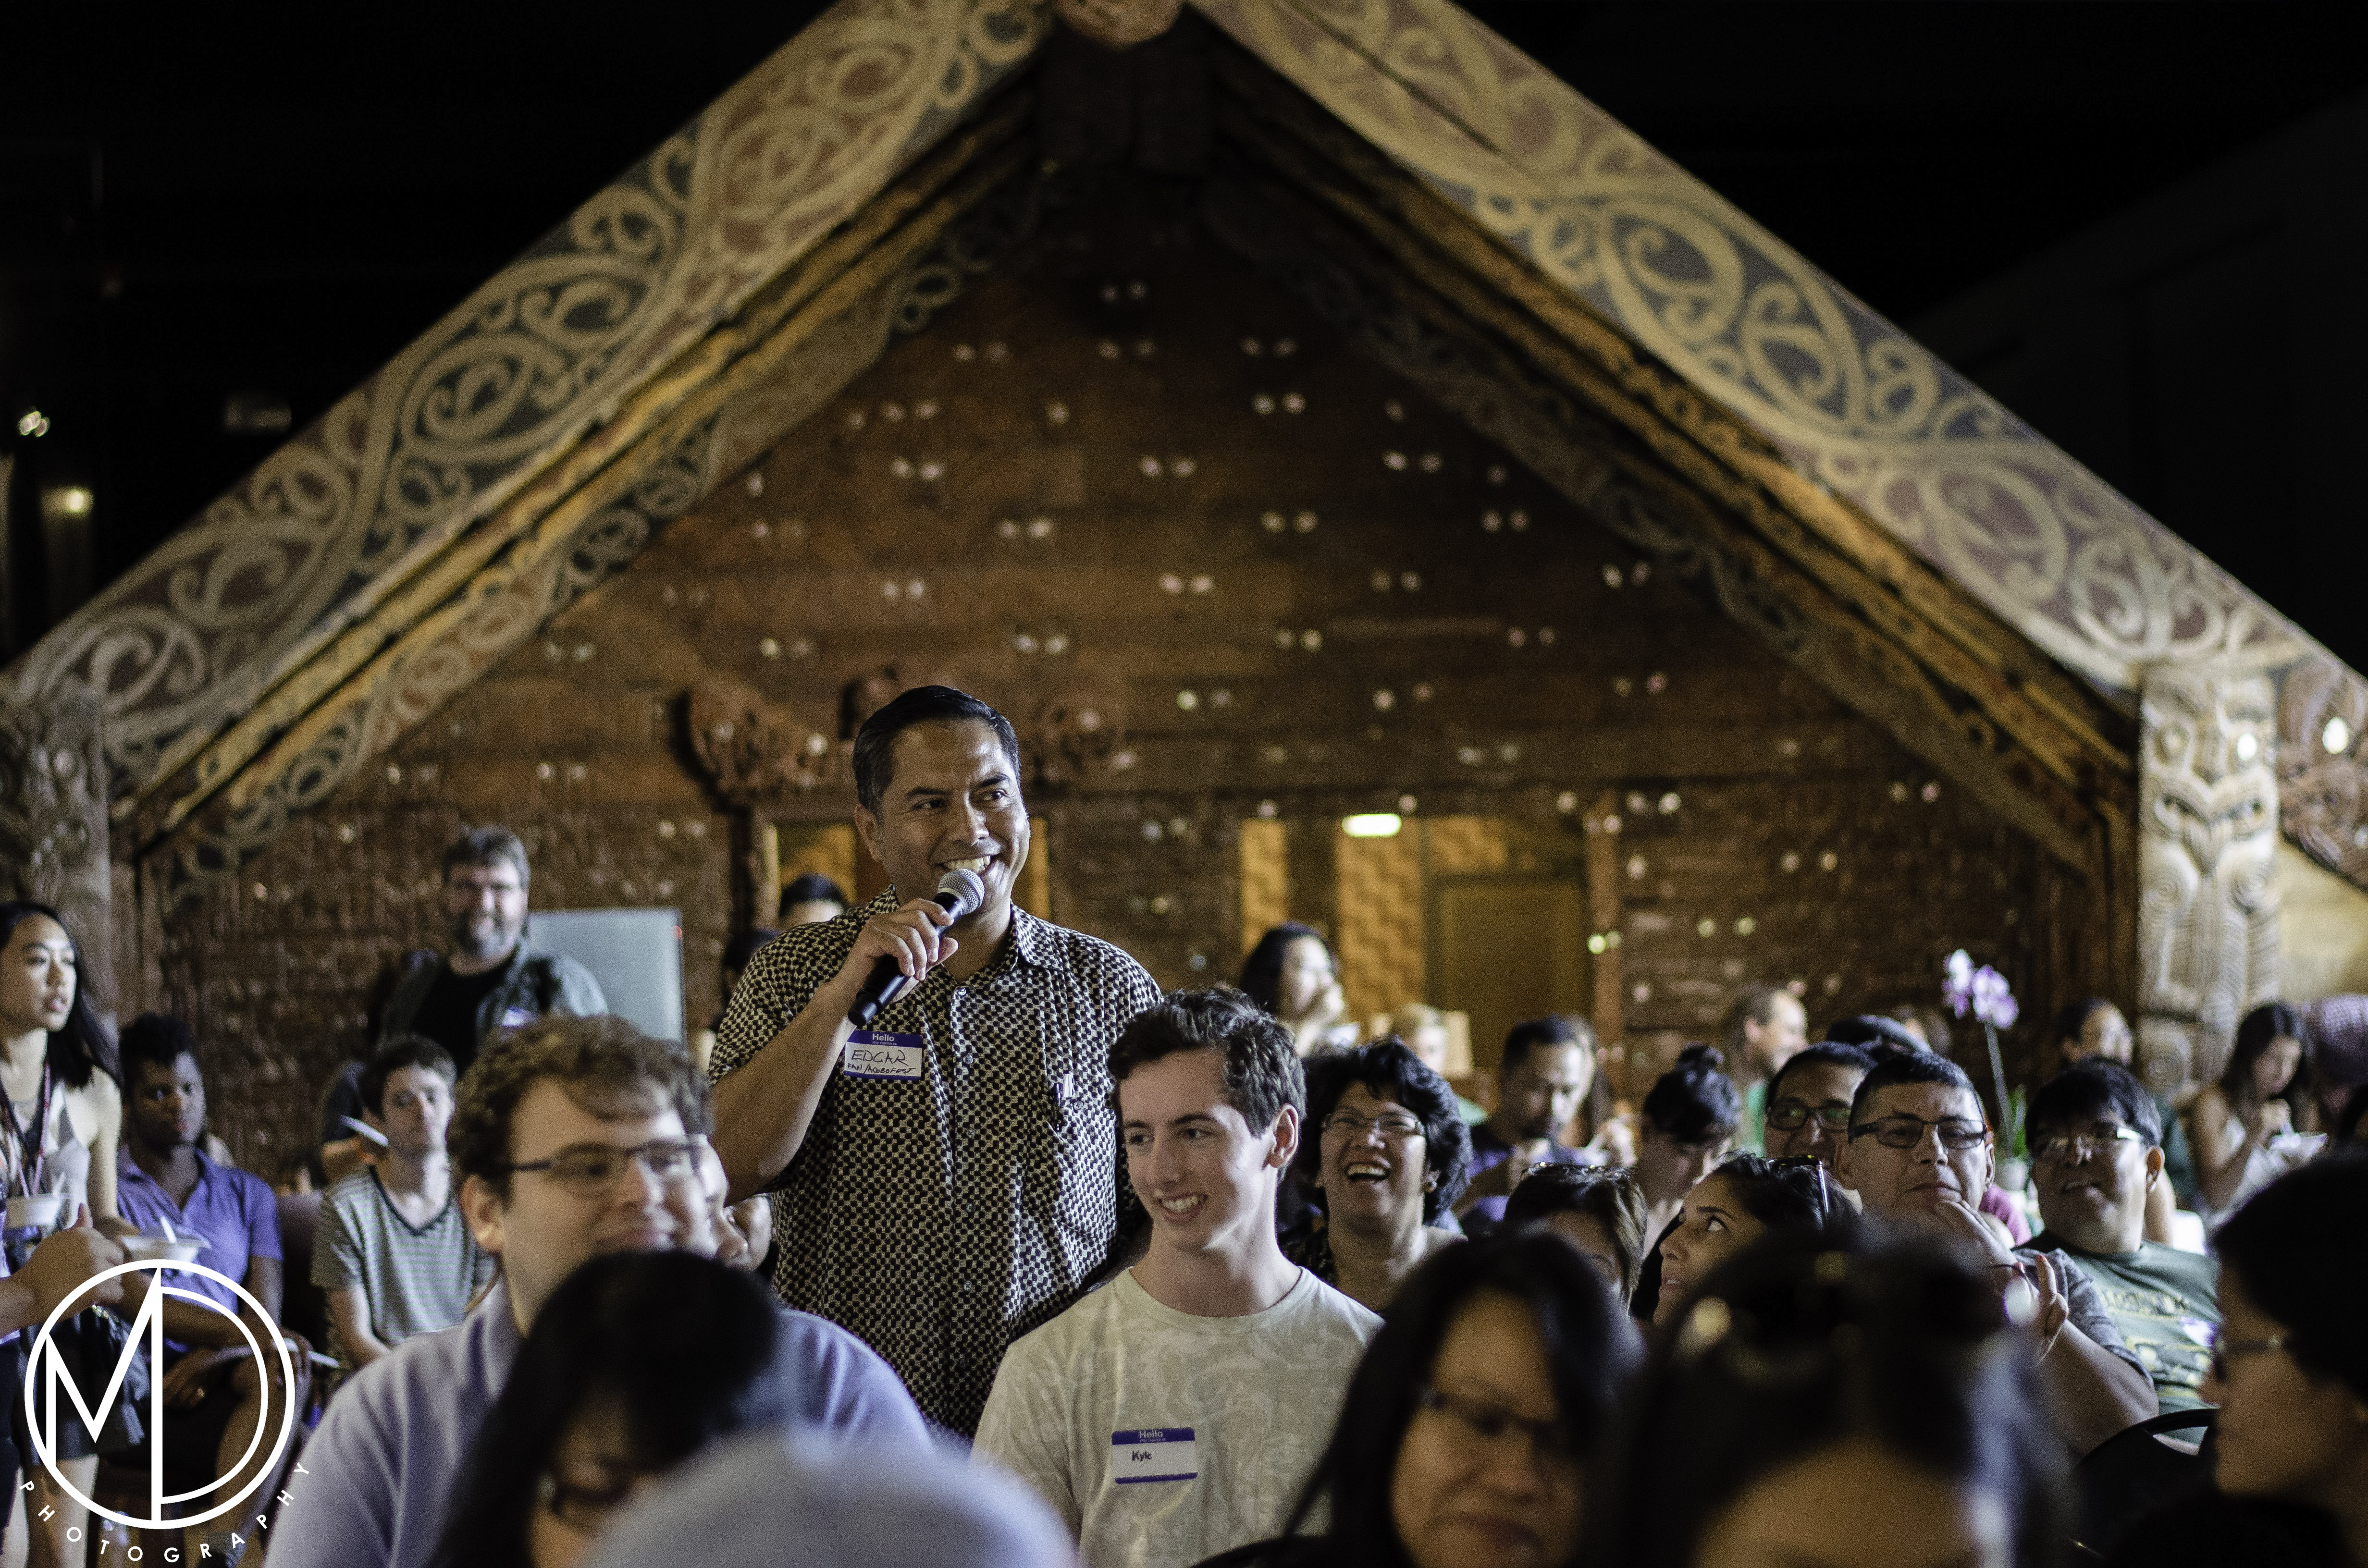 Edgar Jimenez asking a question to our presentors from Filipino Kitchen at the Pamanang Pinoy: Rice event. (c) Field Museum of Natural History - CC BY-NC